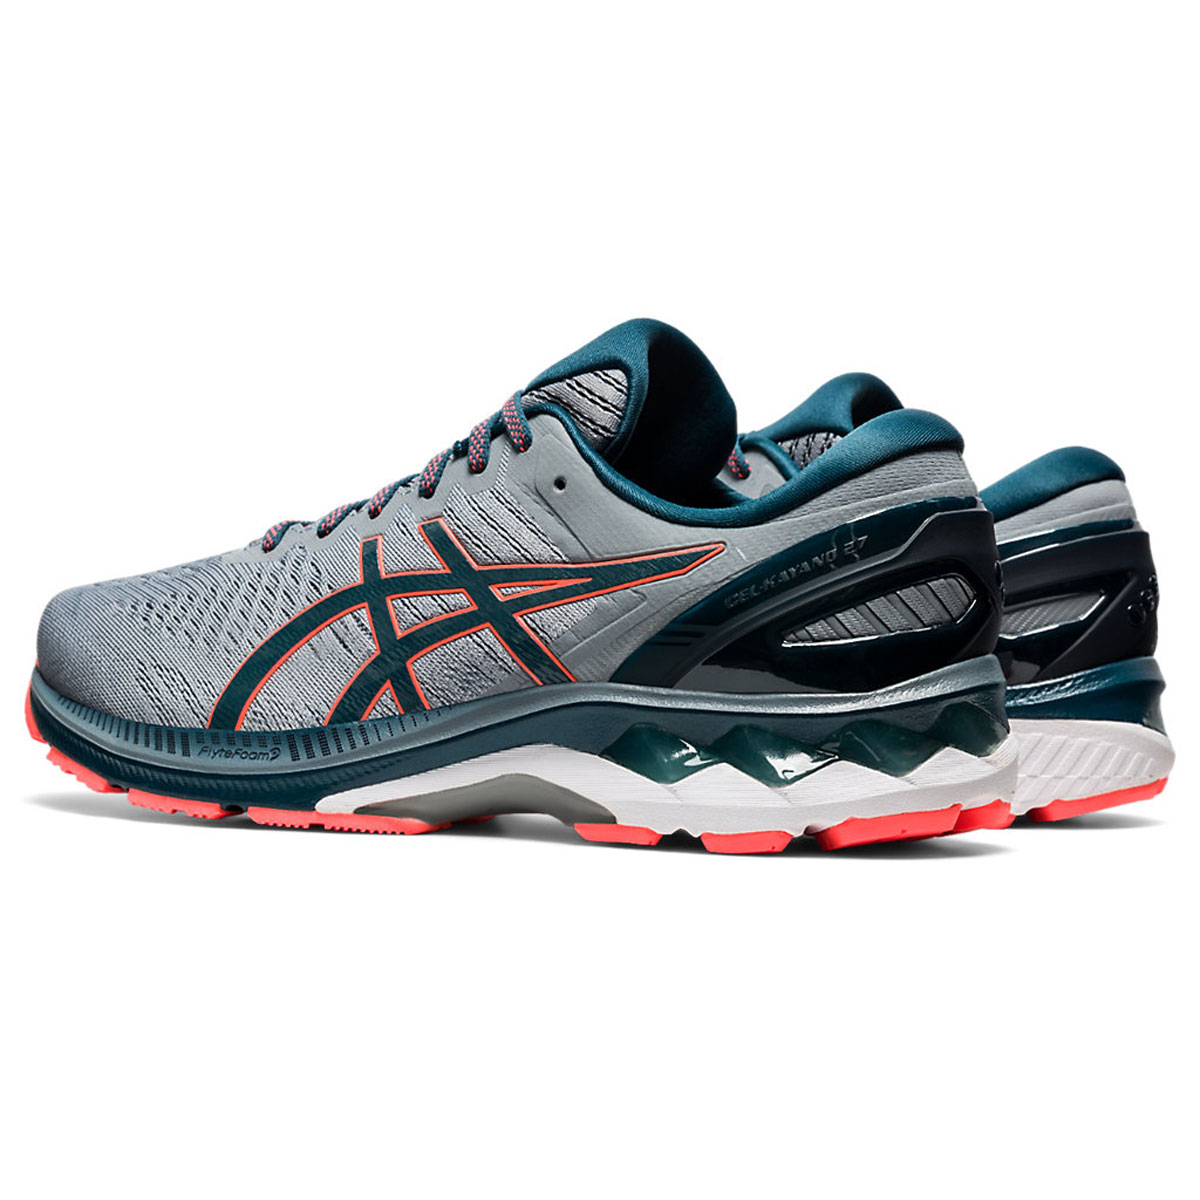 Men's Asics GEL-Kayano 27 Running Shoe - Color: Sheet Rock/Magn (Regular Width) - Size: 6, Sheet Rock/Magnetic Blue, large, image 4